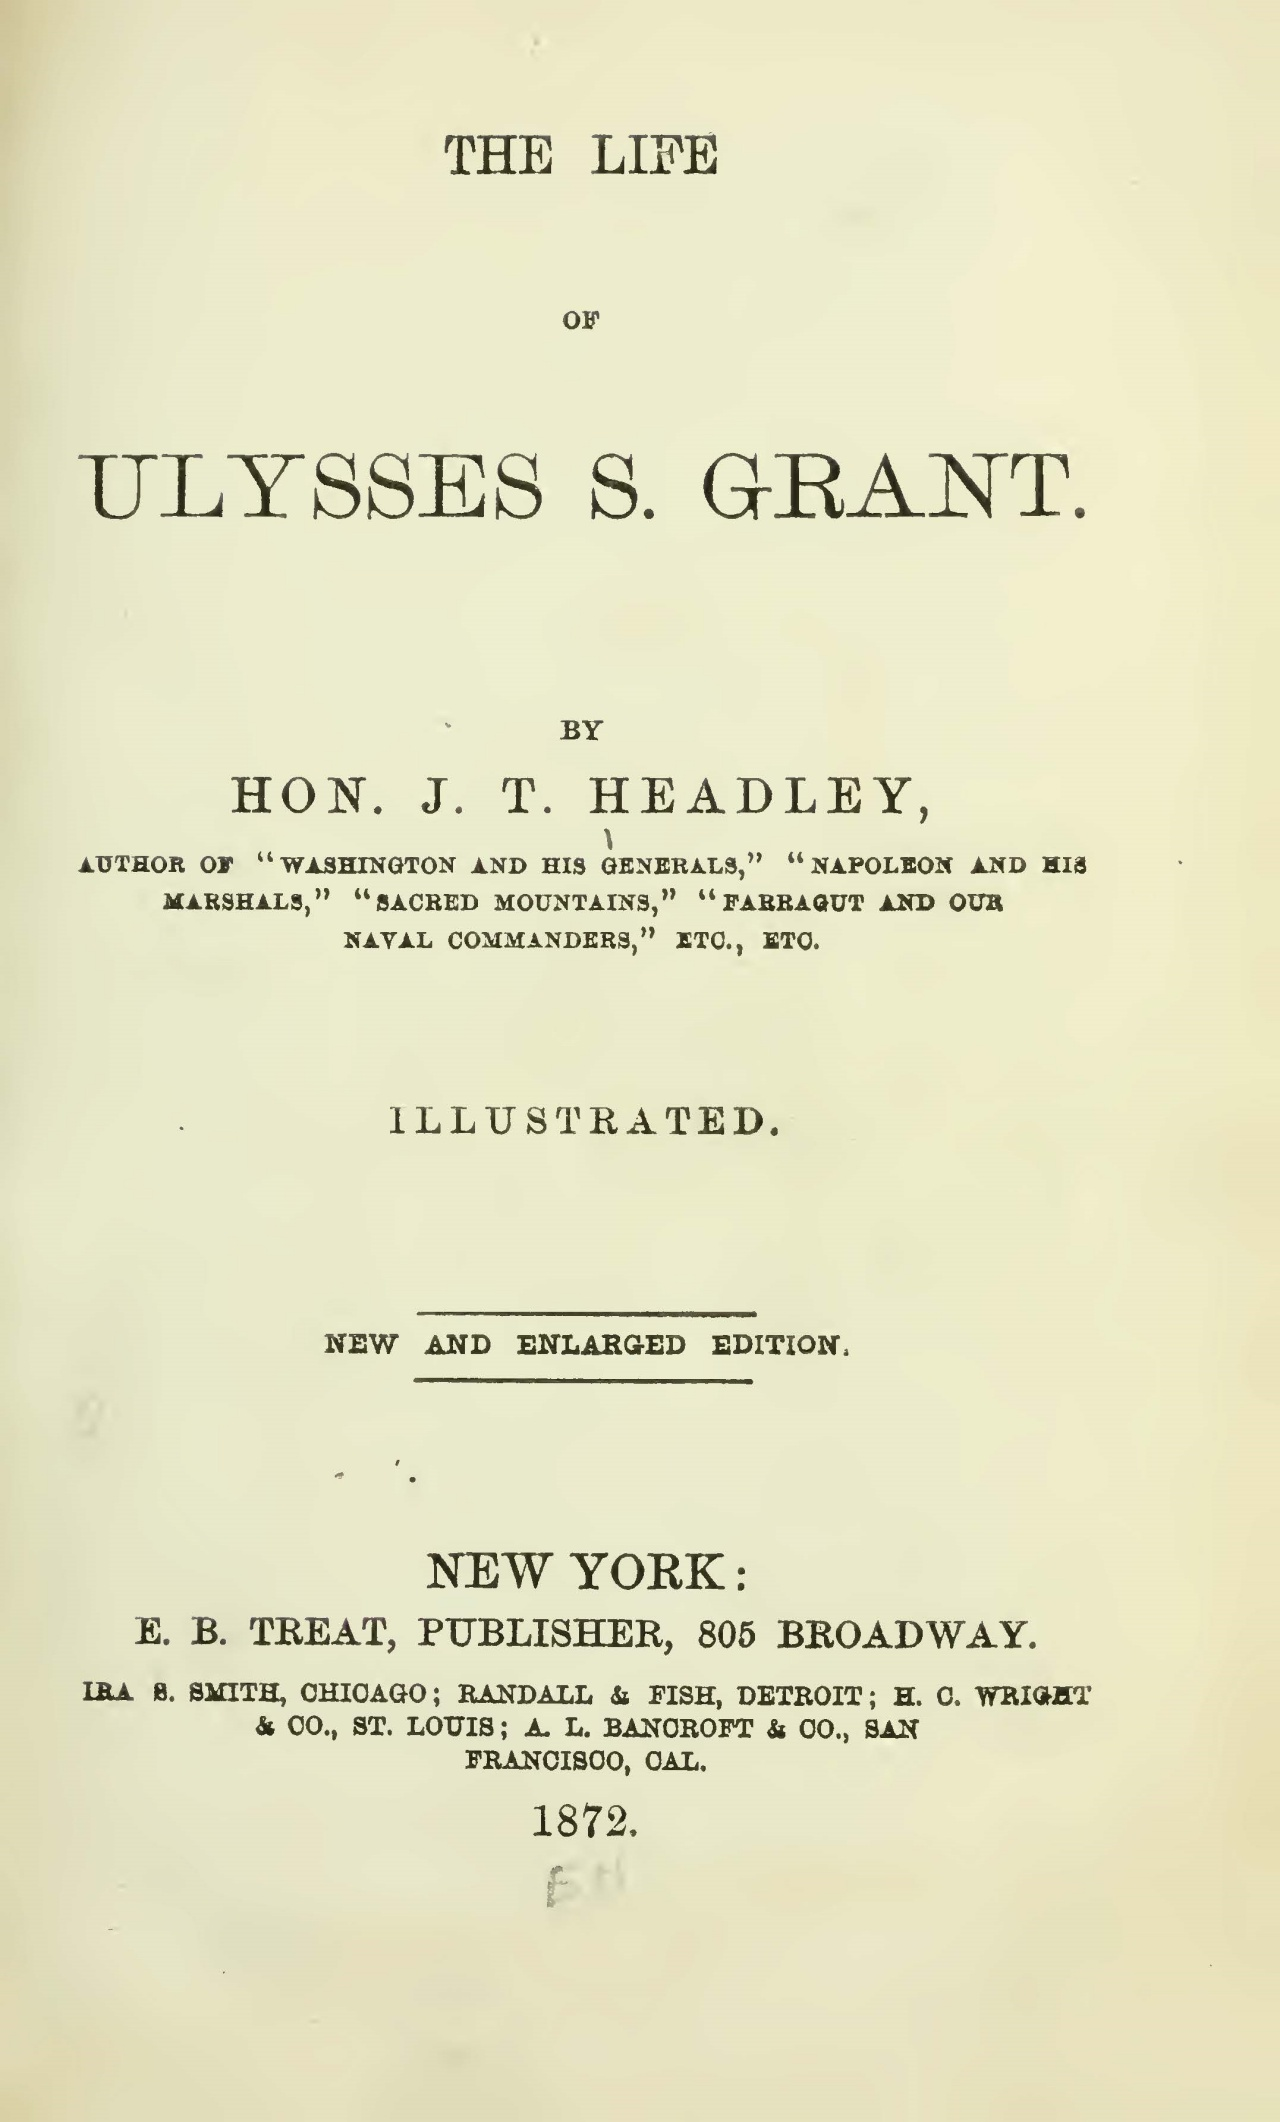 Headley, Joel Tyler, The Life of Ulysses S. Grant Title Page.jpg